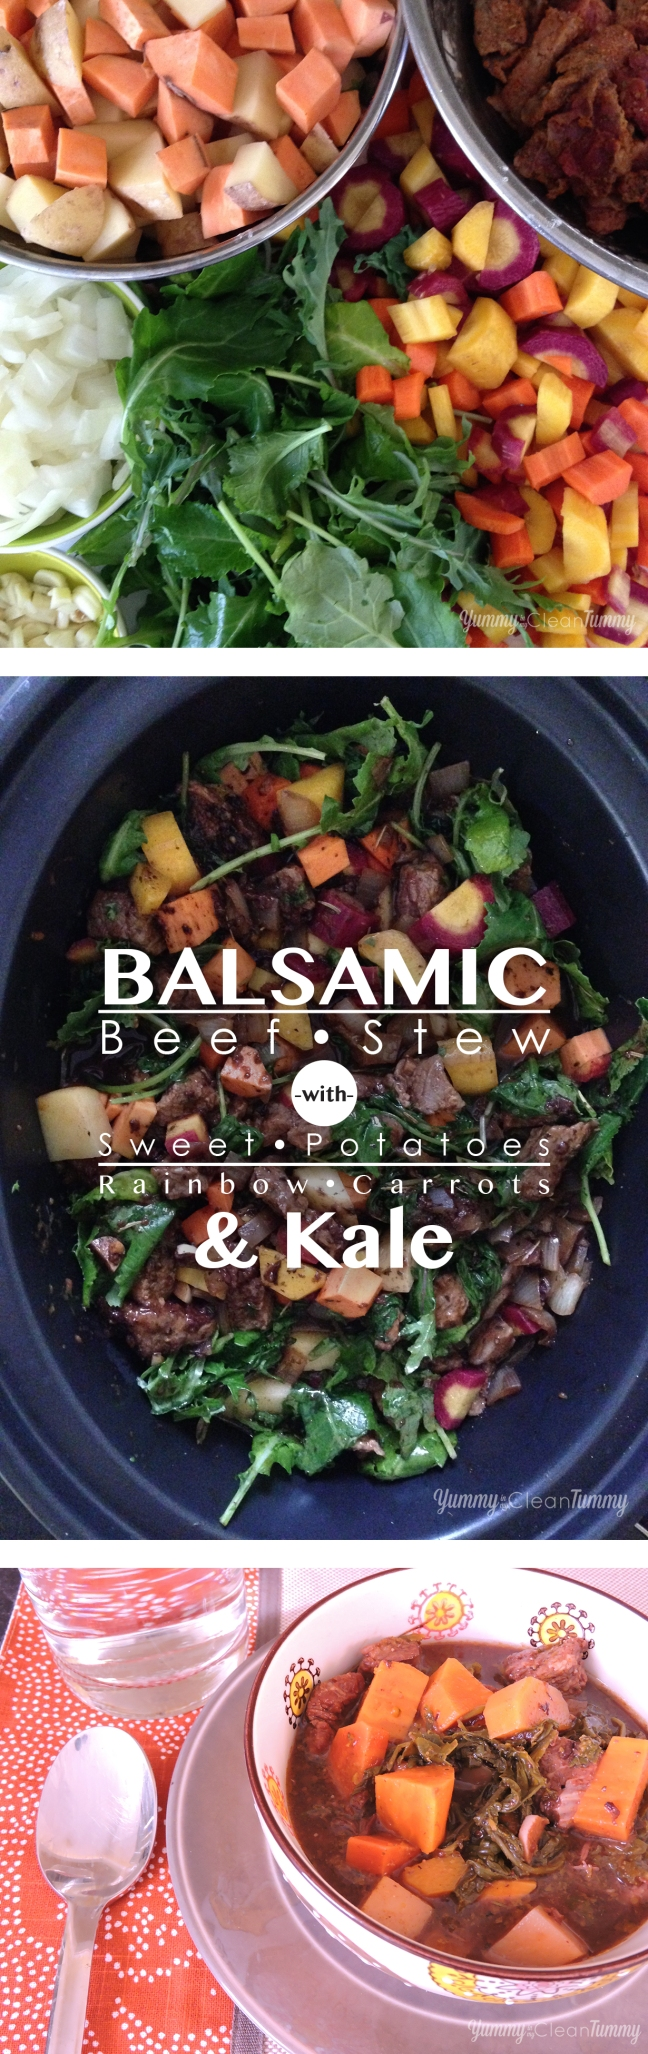 Balsamic Beef Stew with Sweet Potatoes, Rainbow Carrots and Kale | Yummy in my Clean Tummy.com